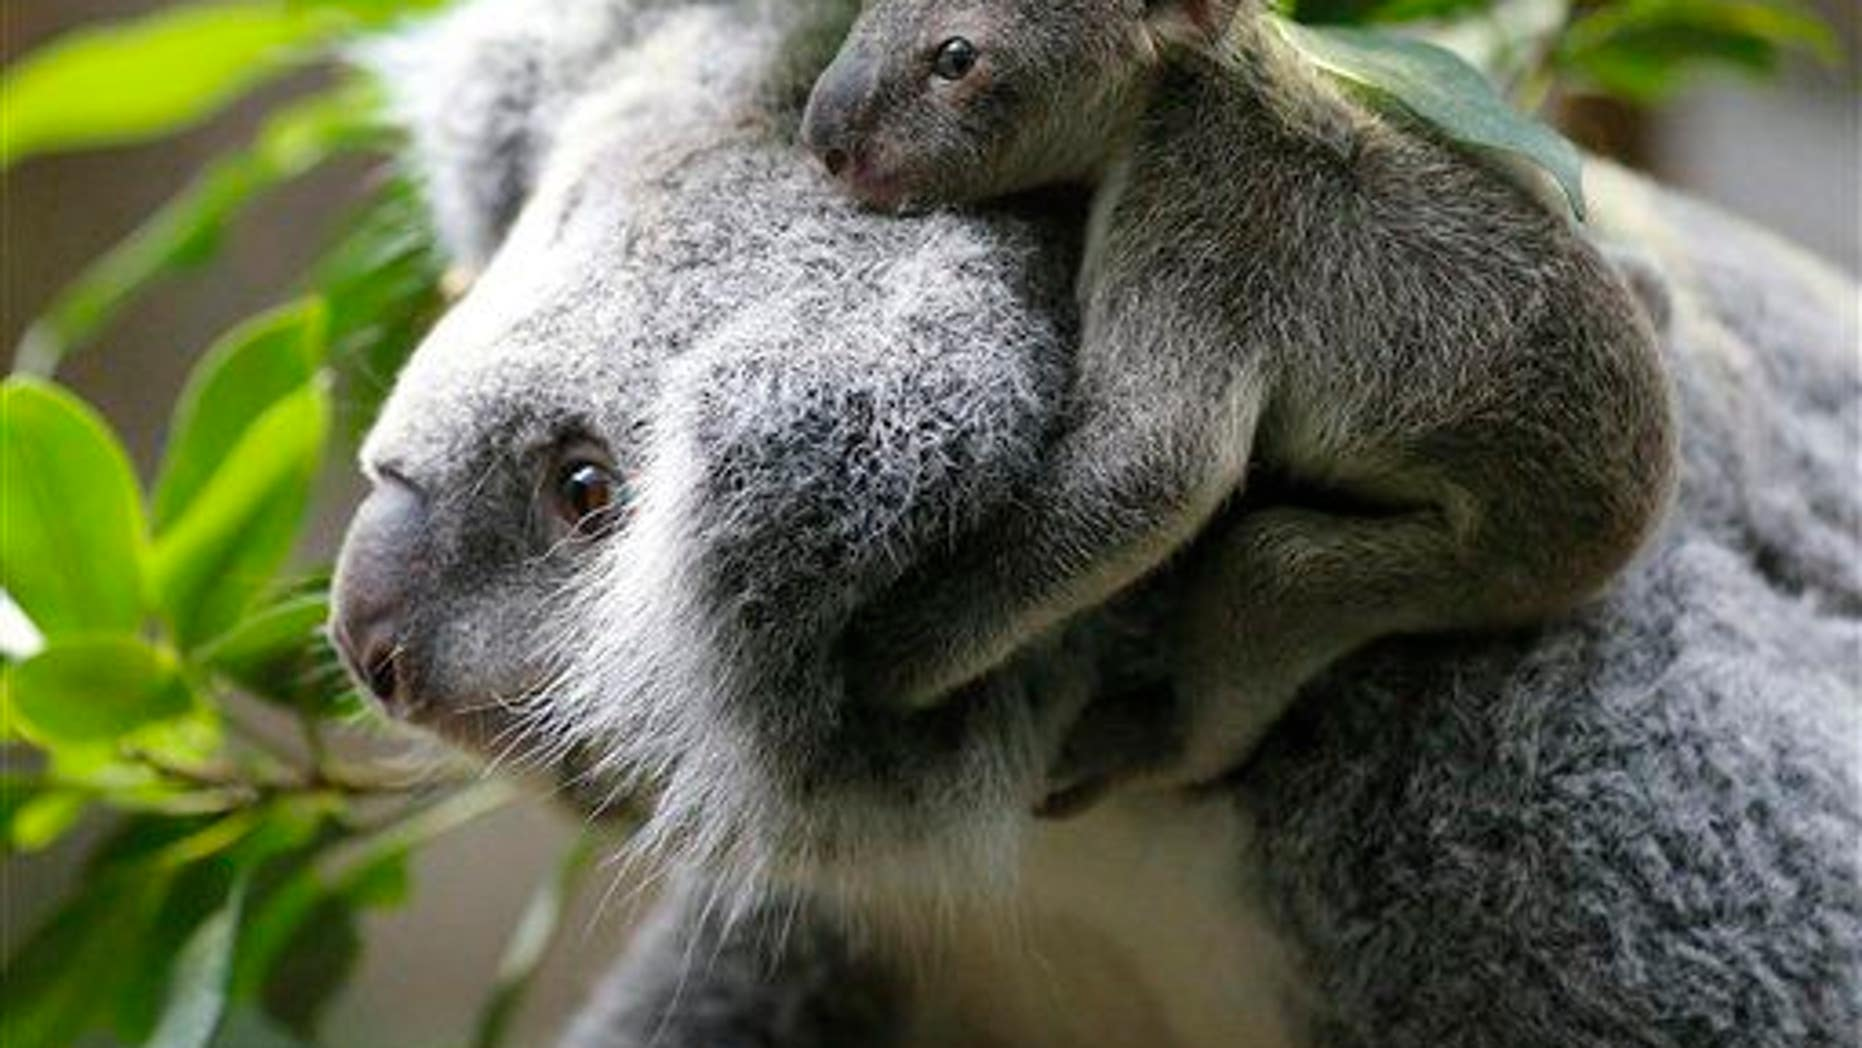 A koala joey sits on its mother's back at Duisburg Zoo in Germany, Jan. 22, 2014.